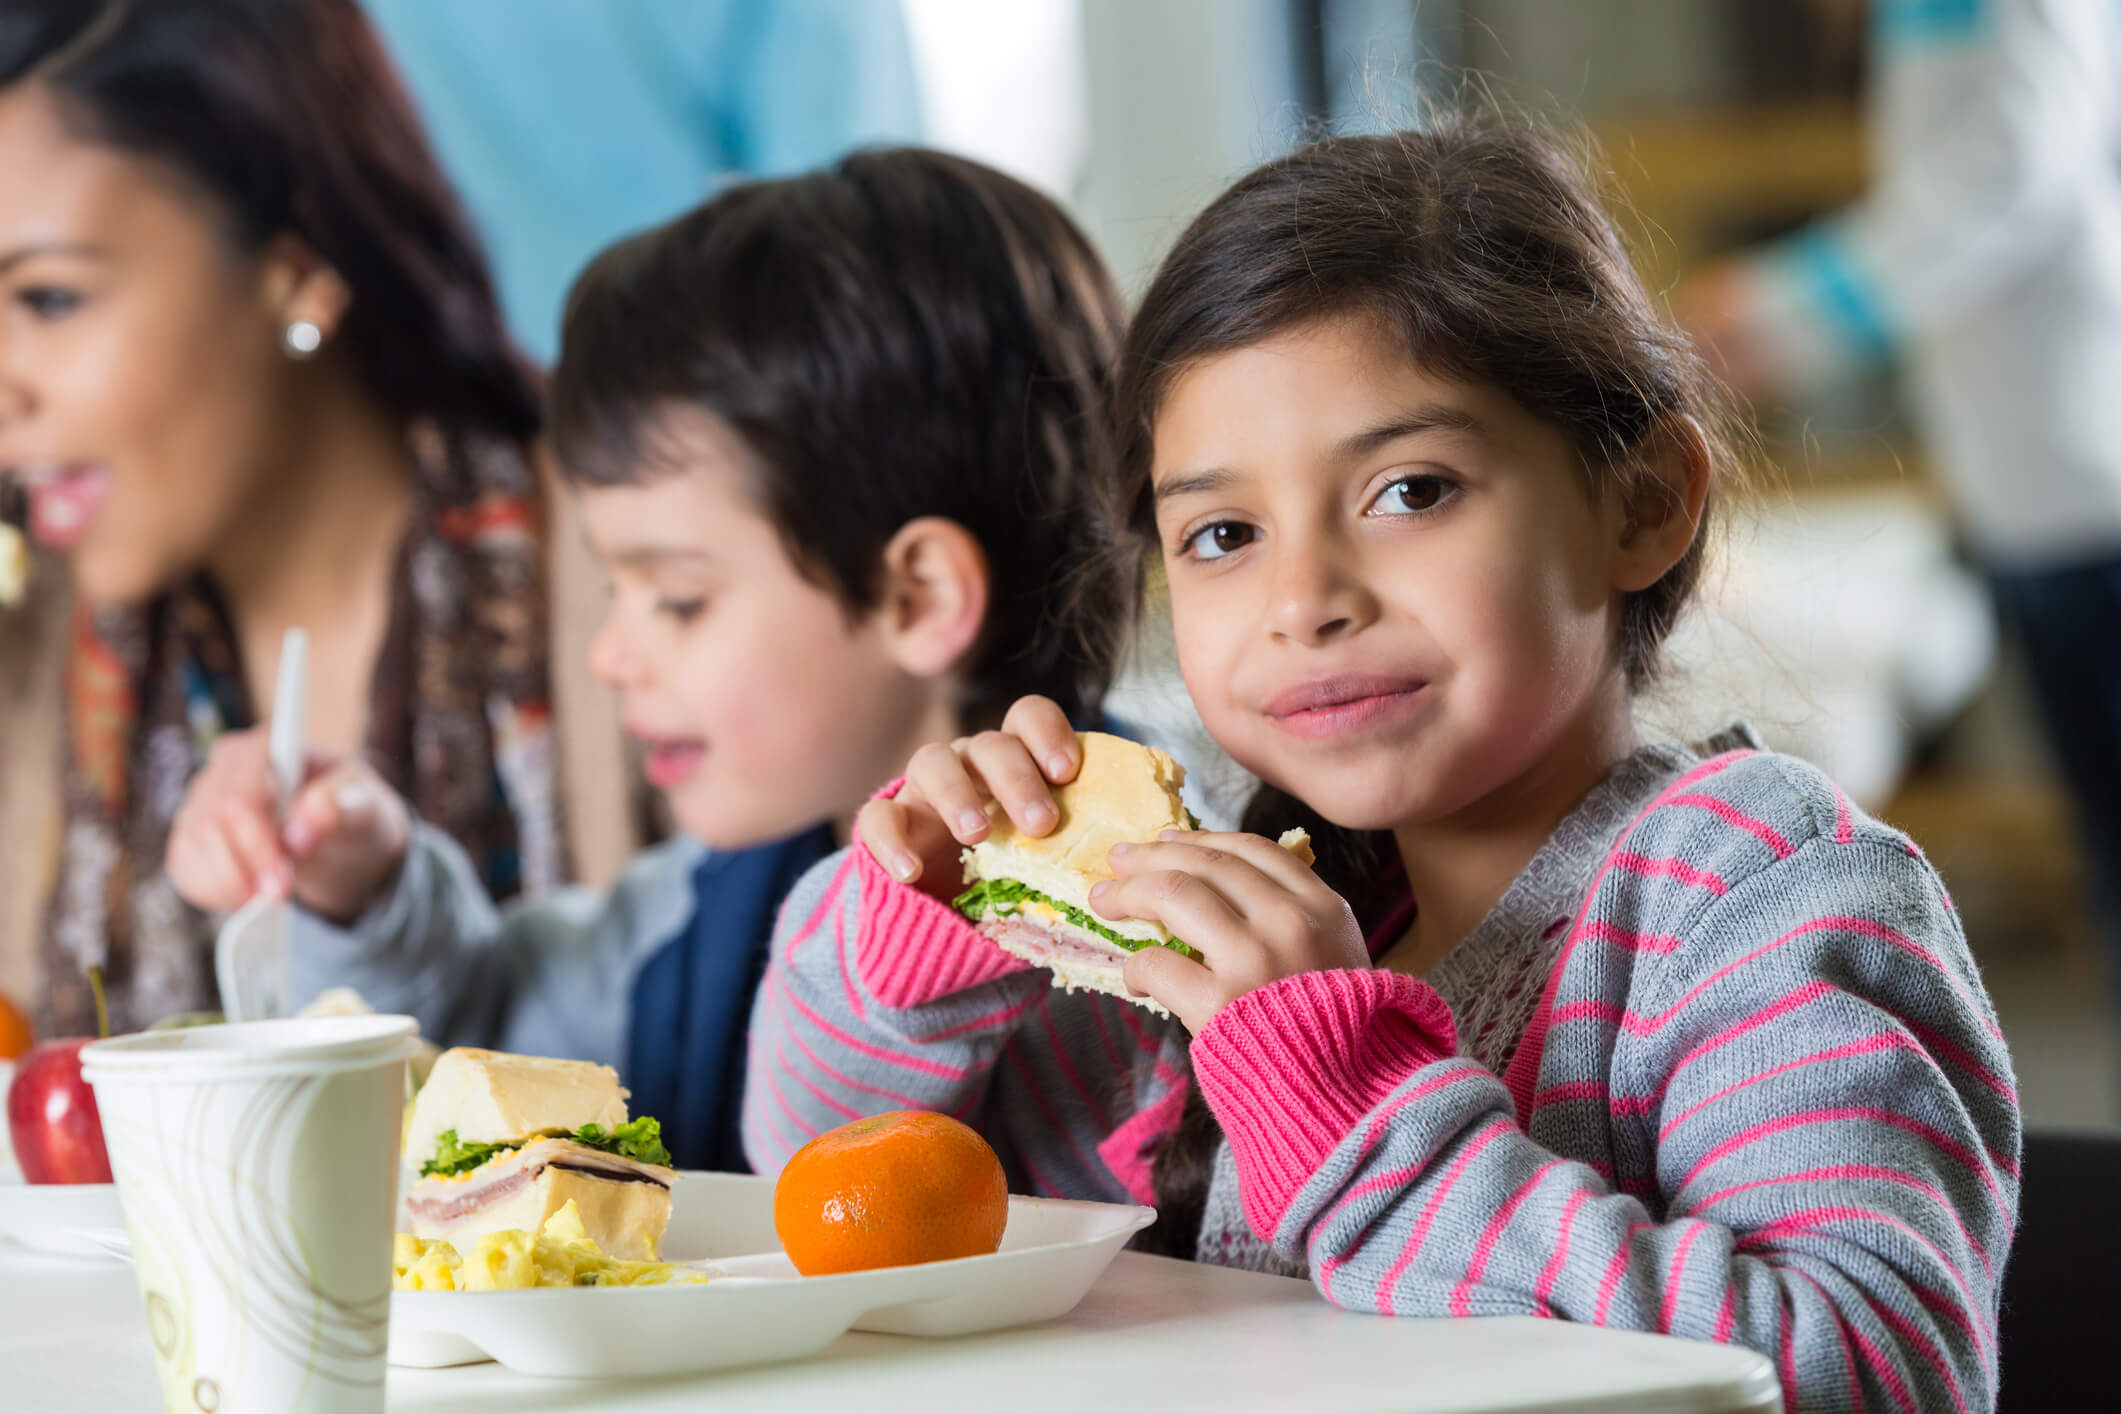 Young girl eating sandwich at school cafeteria lunch table